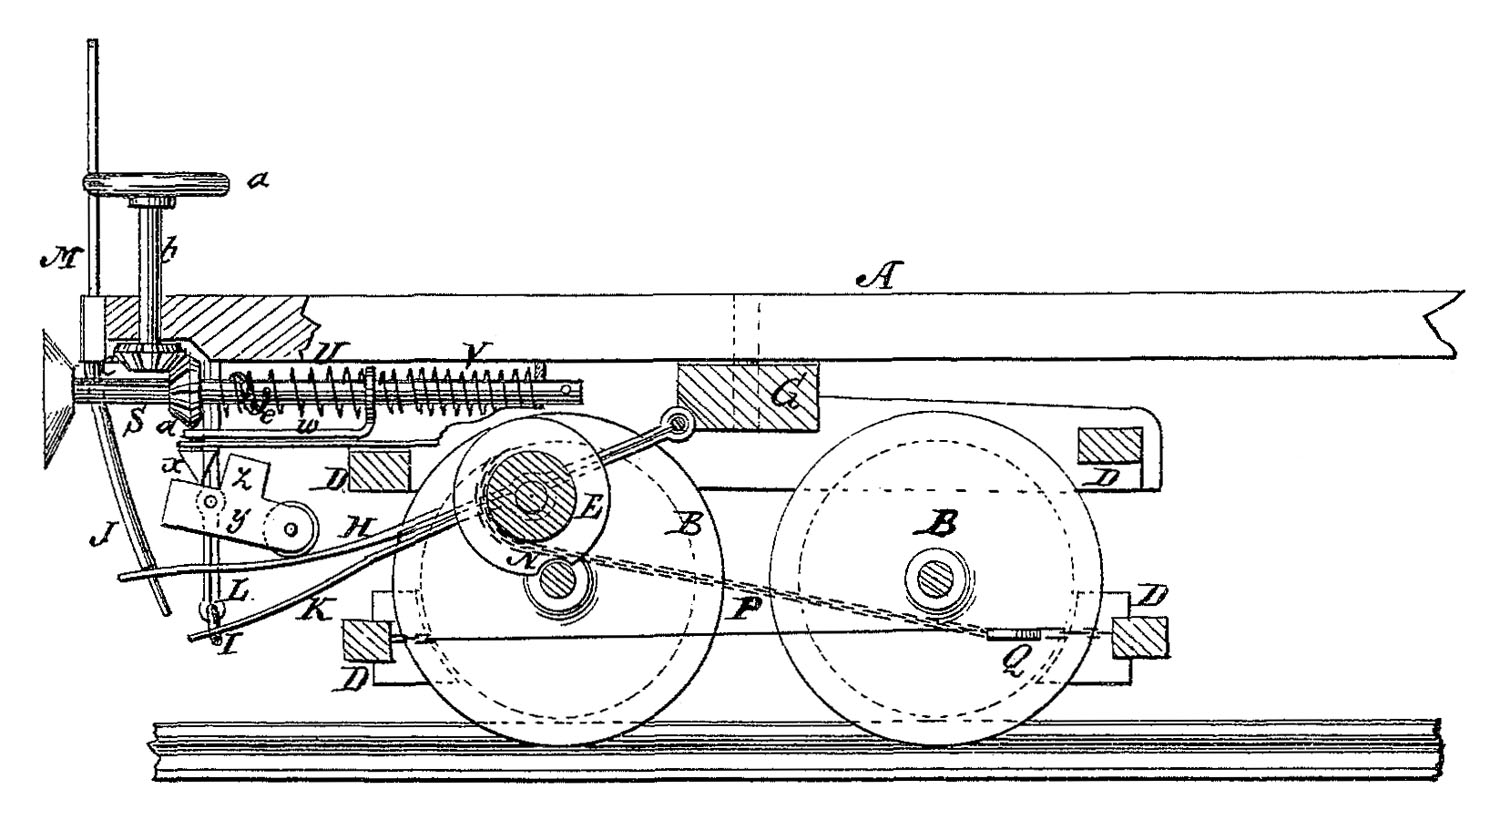 couplers & brakes - the transcontinental railroad diagram of lily of the valley diagram of railcar